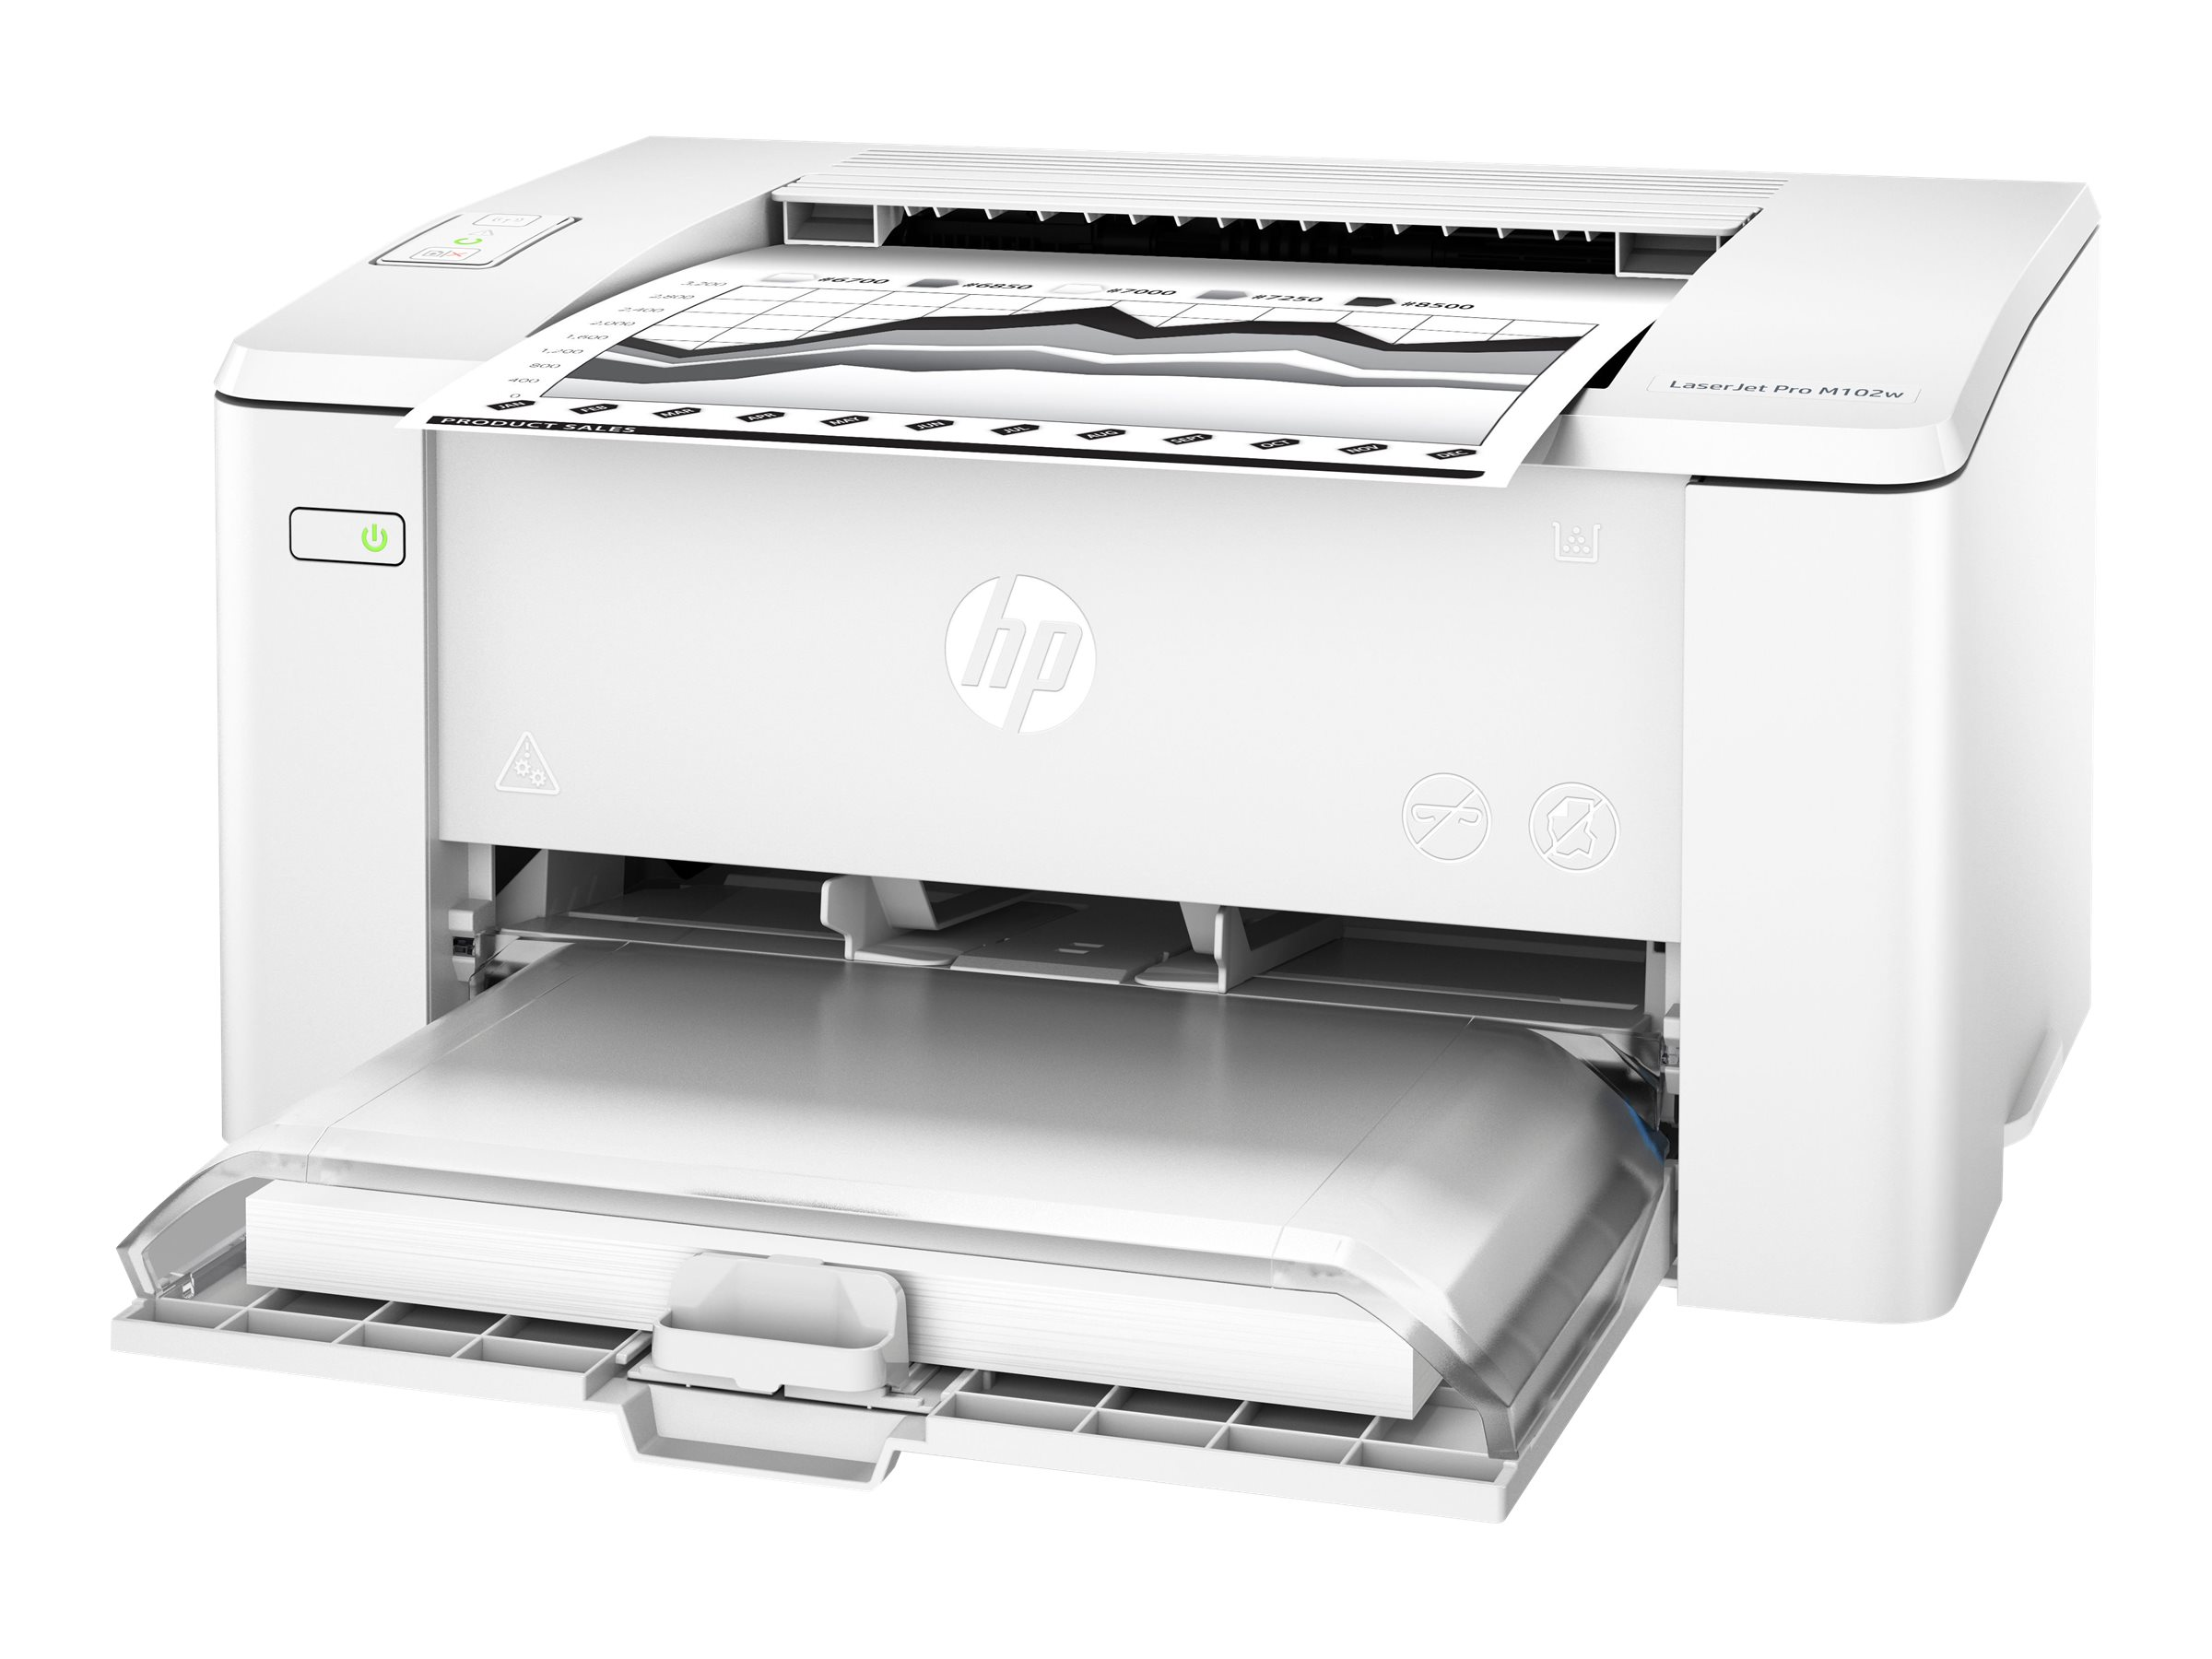 HP LaserJet Pro M102w - printer - B/W - laser